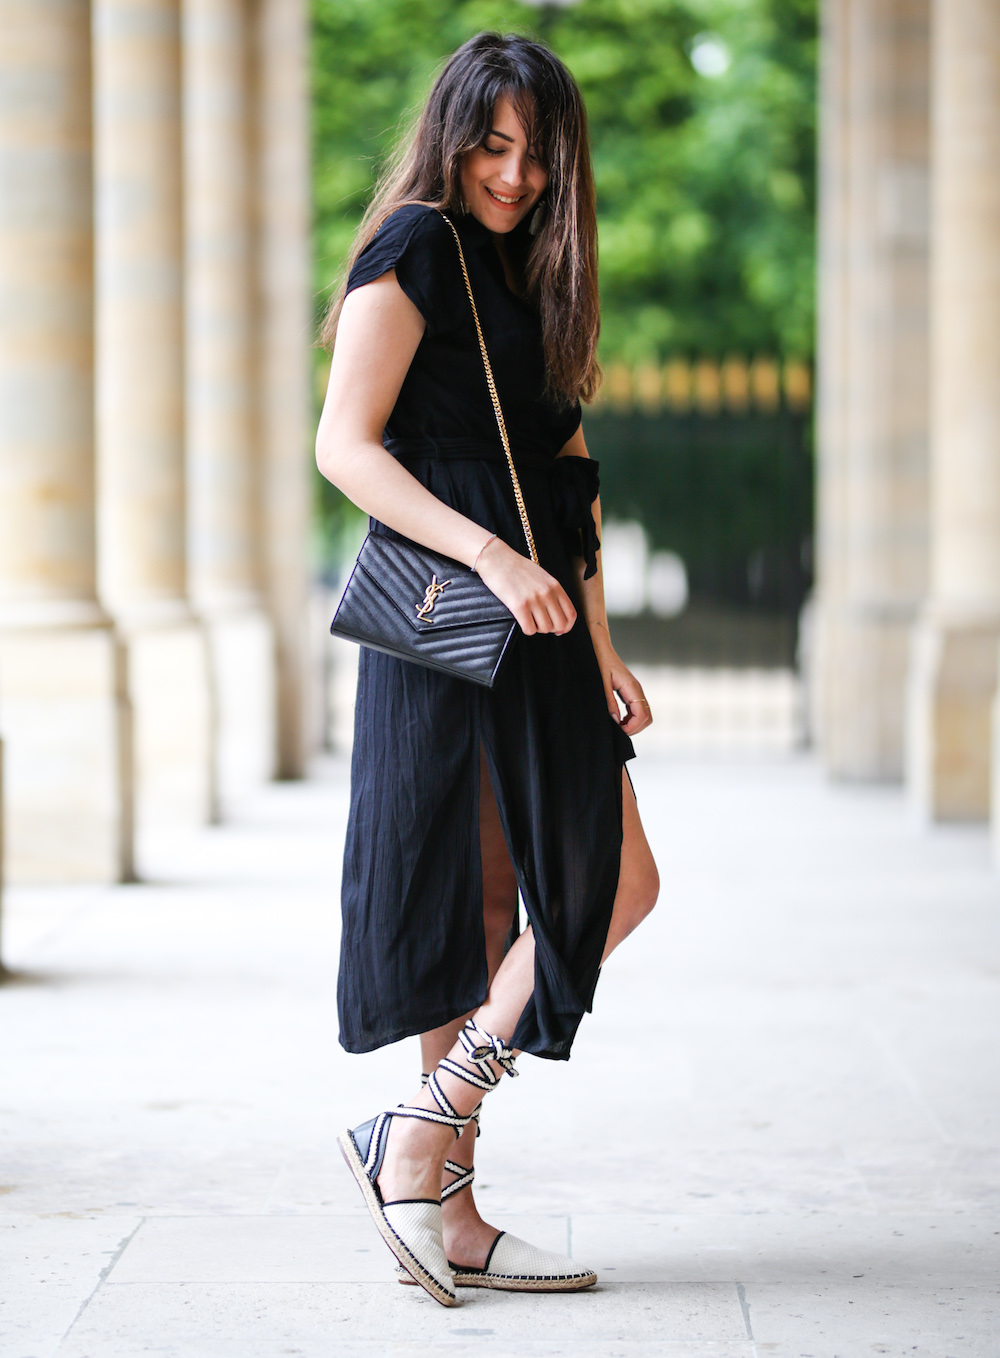 sarah benziane paris 2017 What to Wear on a First Date, According to a Dating Expert